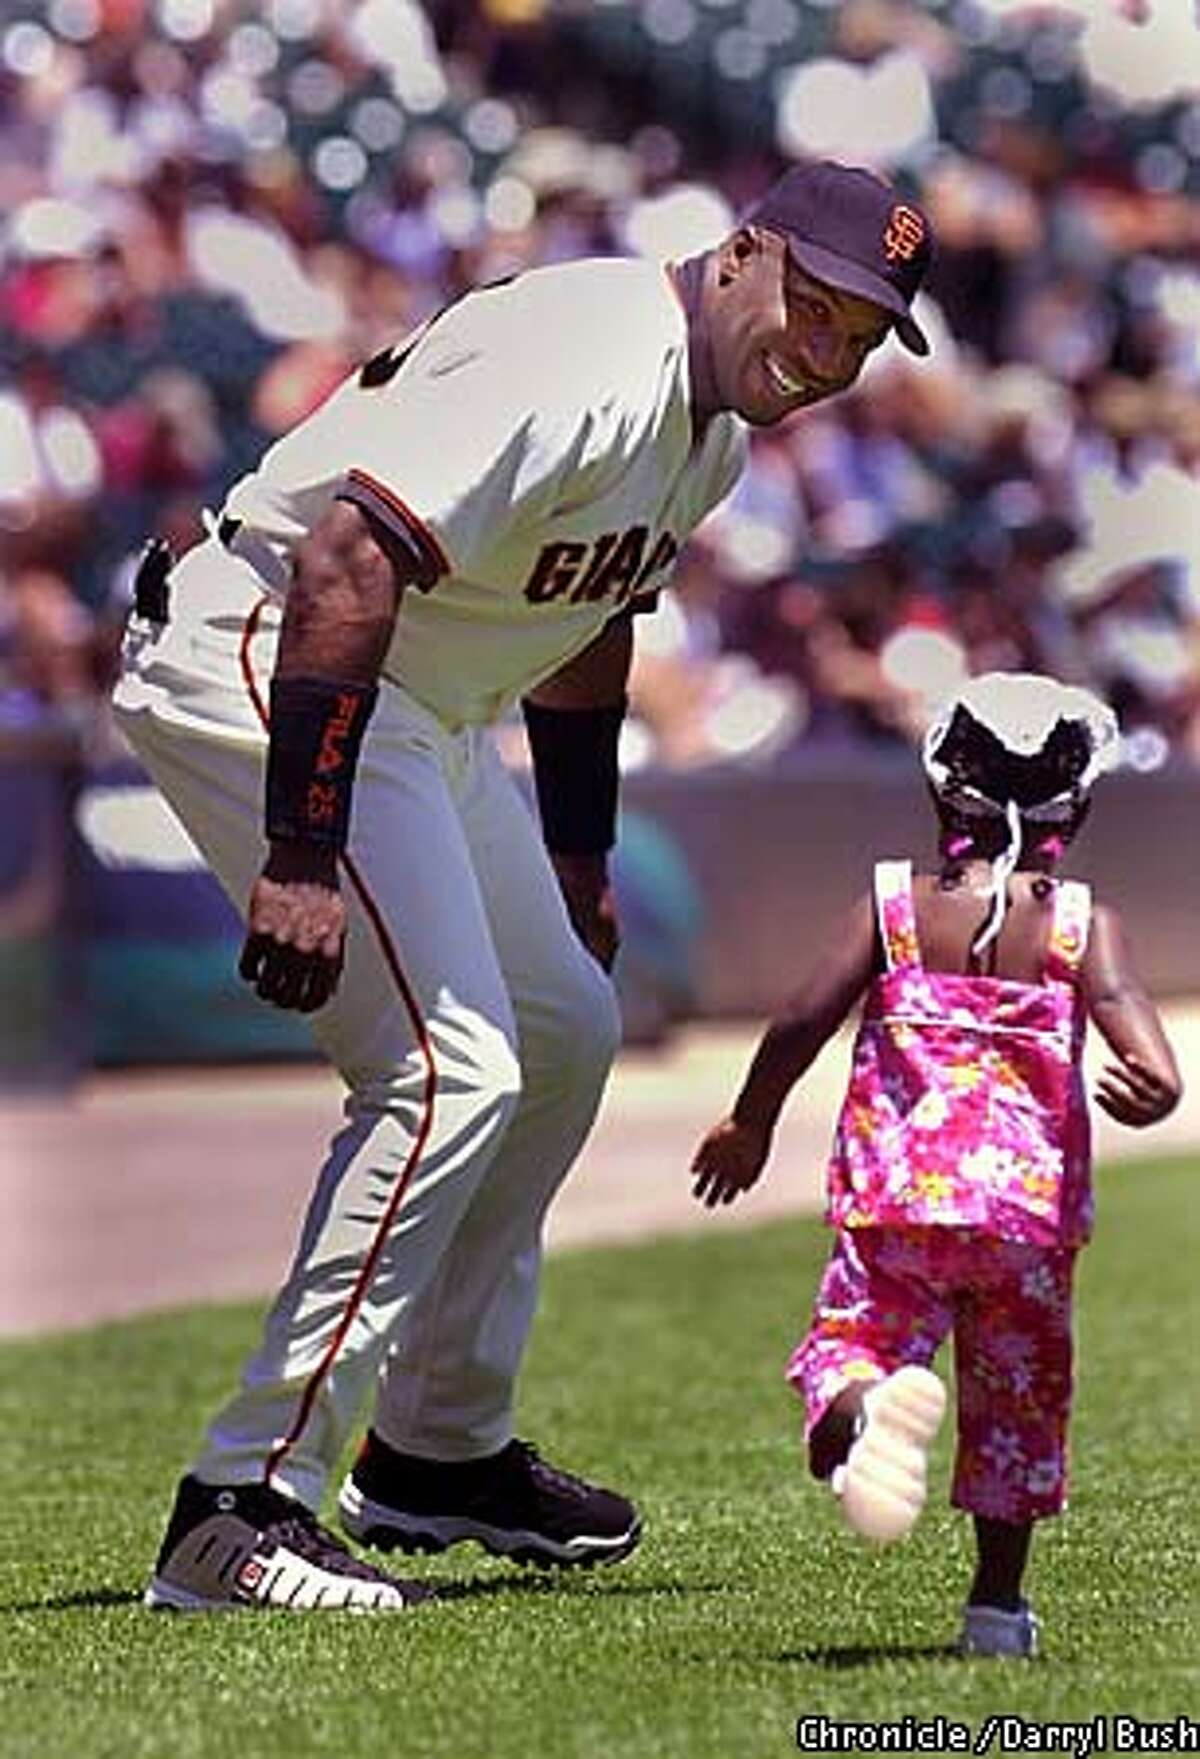 Two-year-old Aisha joined dad, Barry Bonds, on the field for the pregame ceremony for Barry Bonds Day last Sunday. Chronicle photo by Darryl Bush